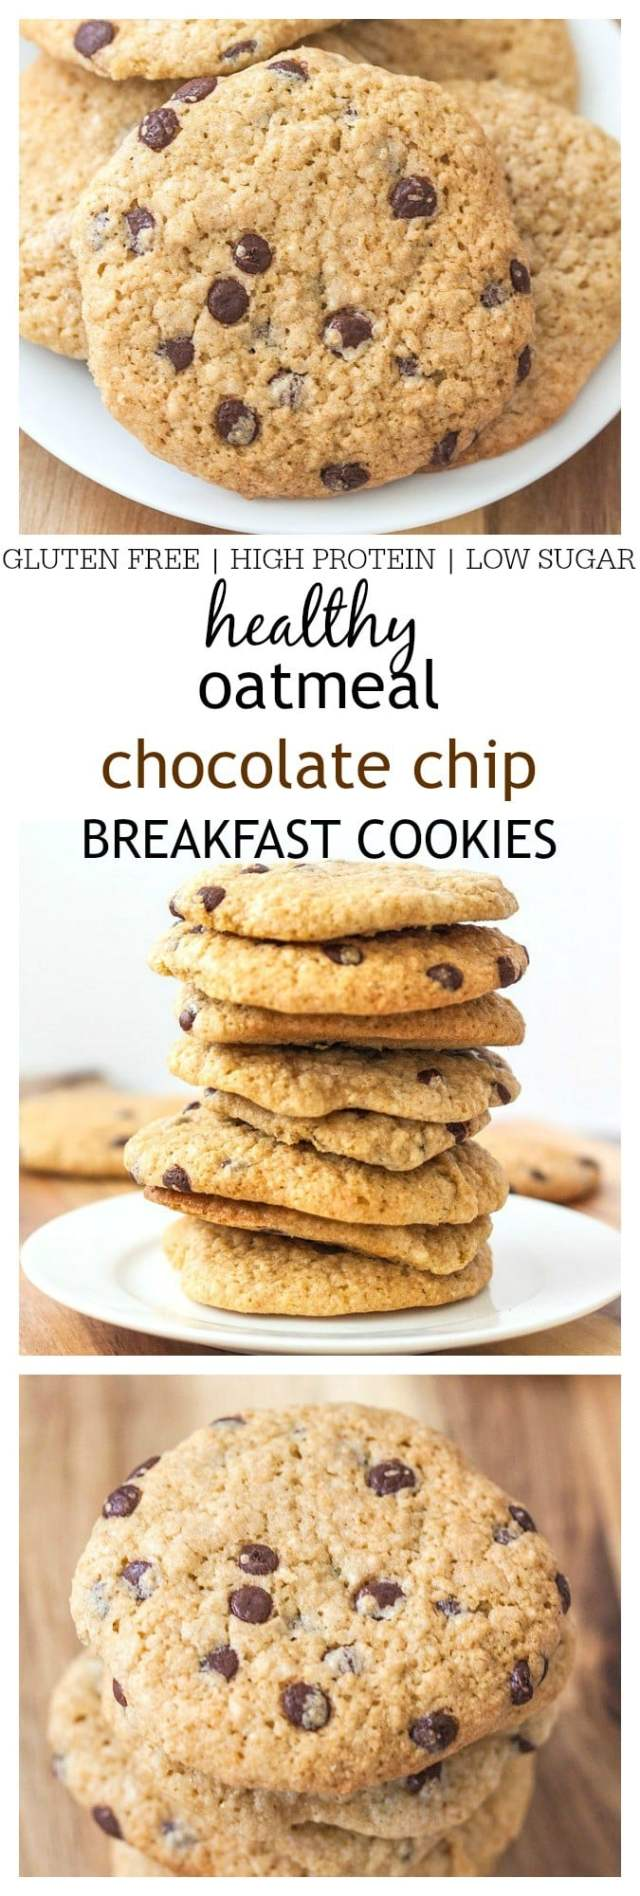 Healthy Oatmeal Chocolate Chip Breakfast Cookies- A healthy, chewy, gluten free breakfast cookie recipe which is high in protein, sugar free and full of complex carbohydrates for a perfect balanced breakfast or mini meal. 1 bowl and 10 minutes is all you'll need for this super simple creation! @thebigmansworld -thebigmansworld.com